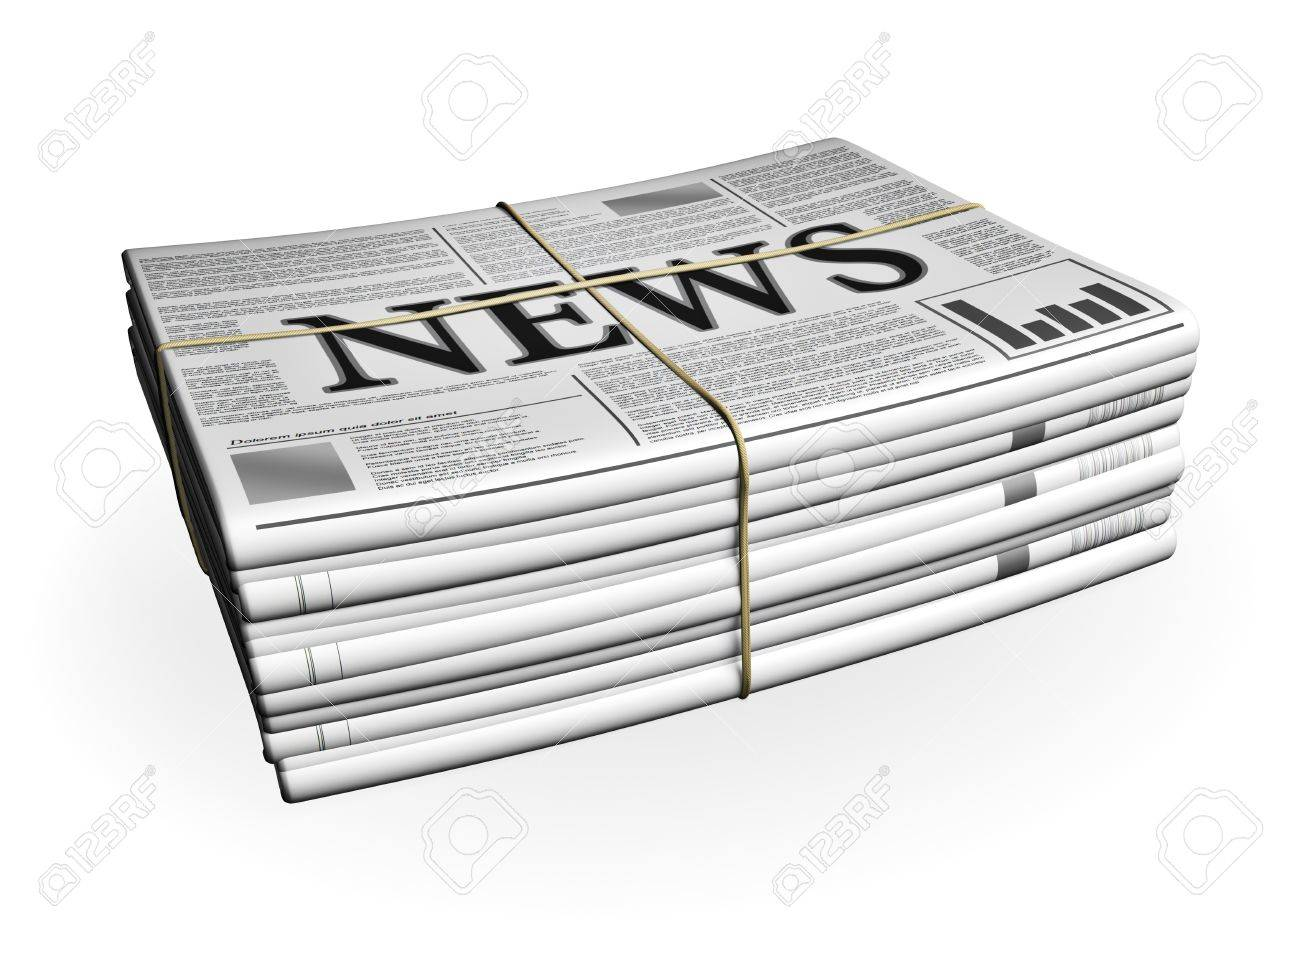 Newspaper Stack isolated on white - 18978016